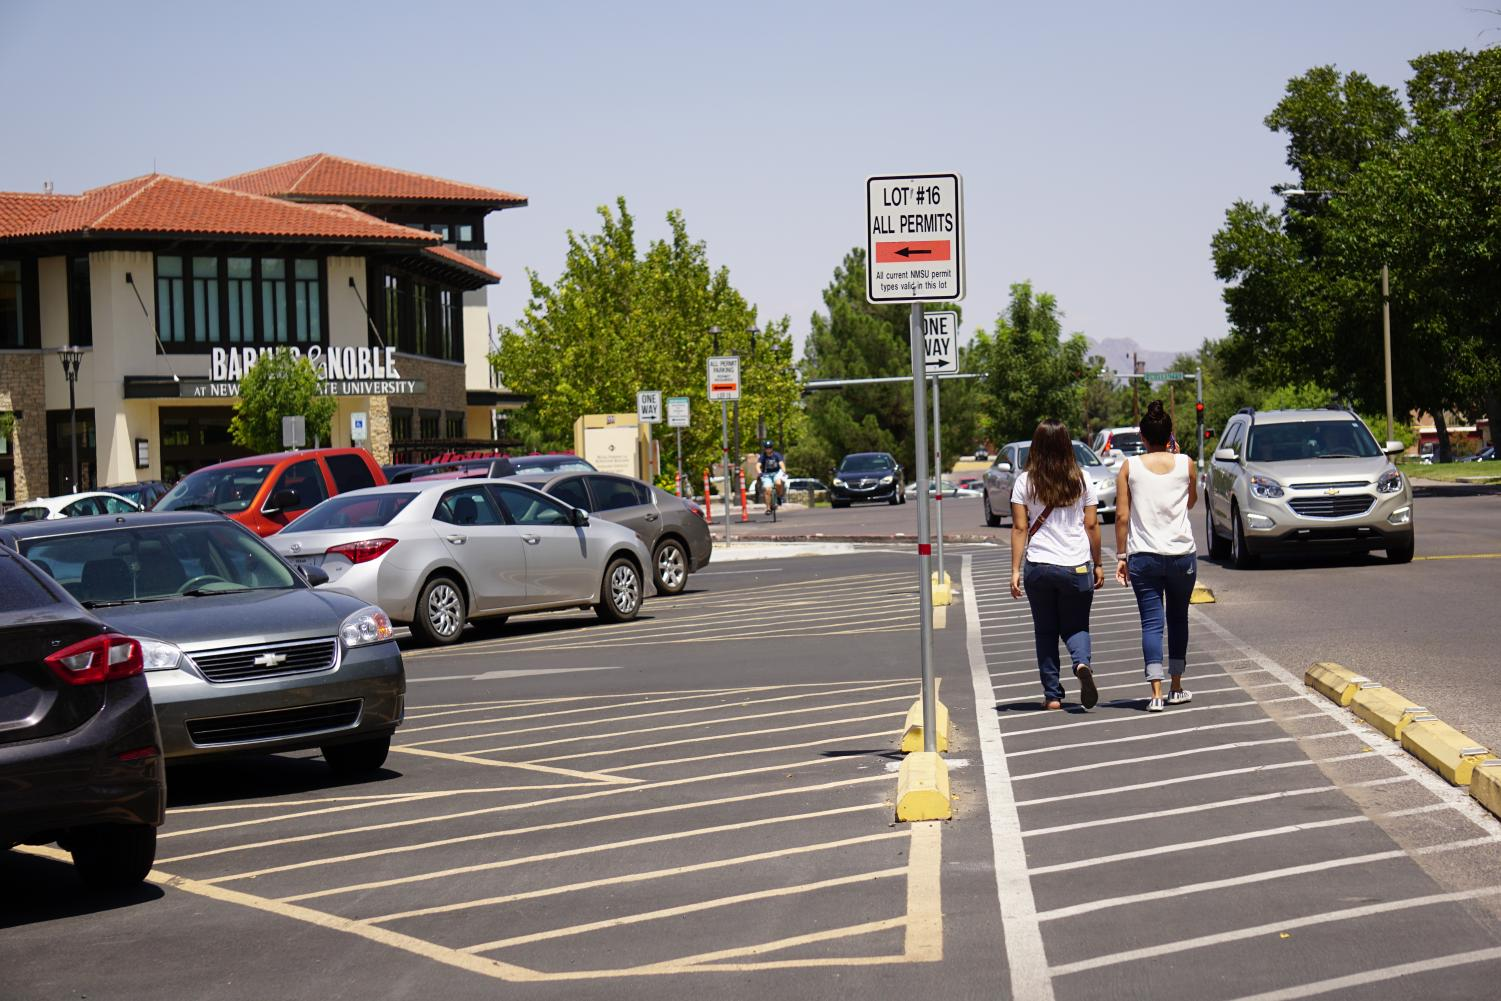 NMSU's Parking Department sold more permits in 2017-18 than parking spots available on campus.